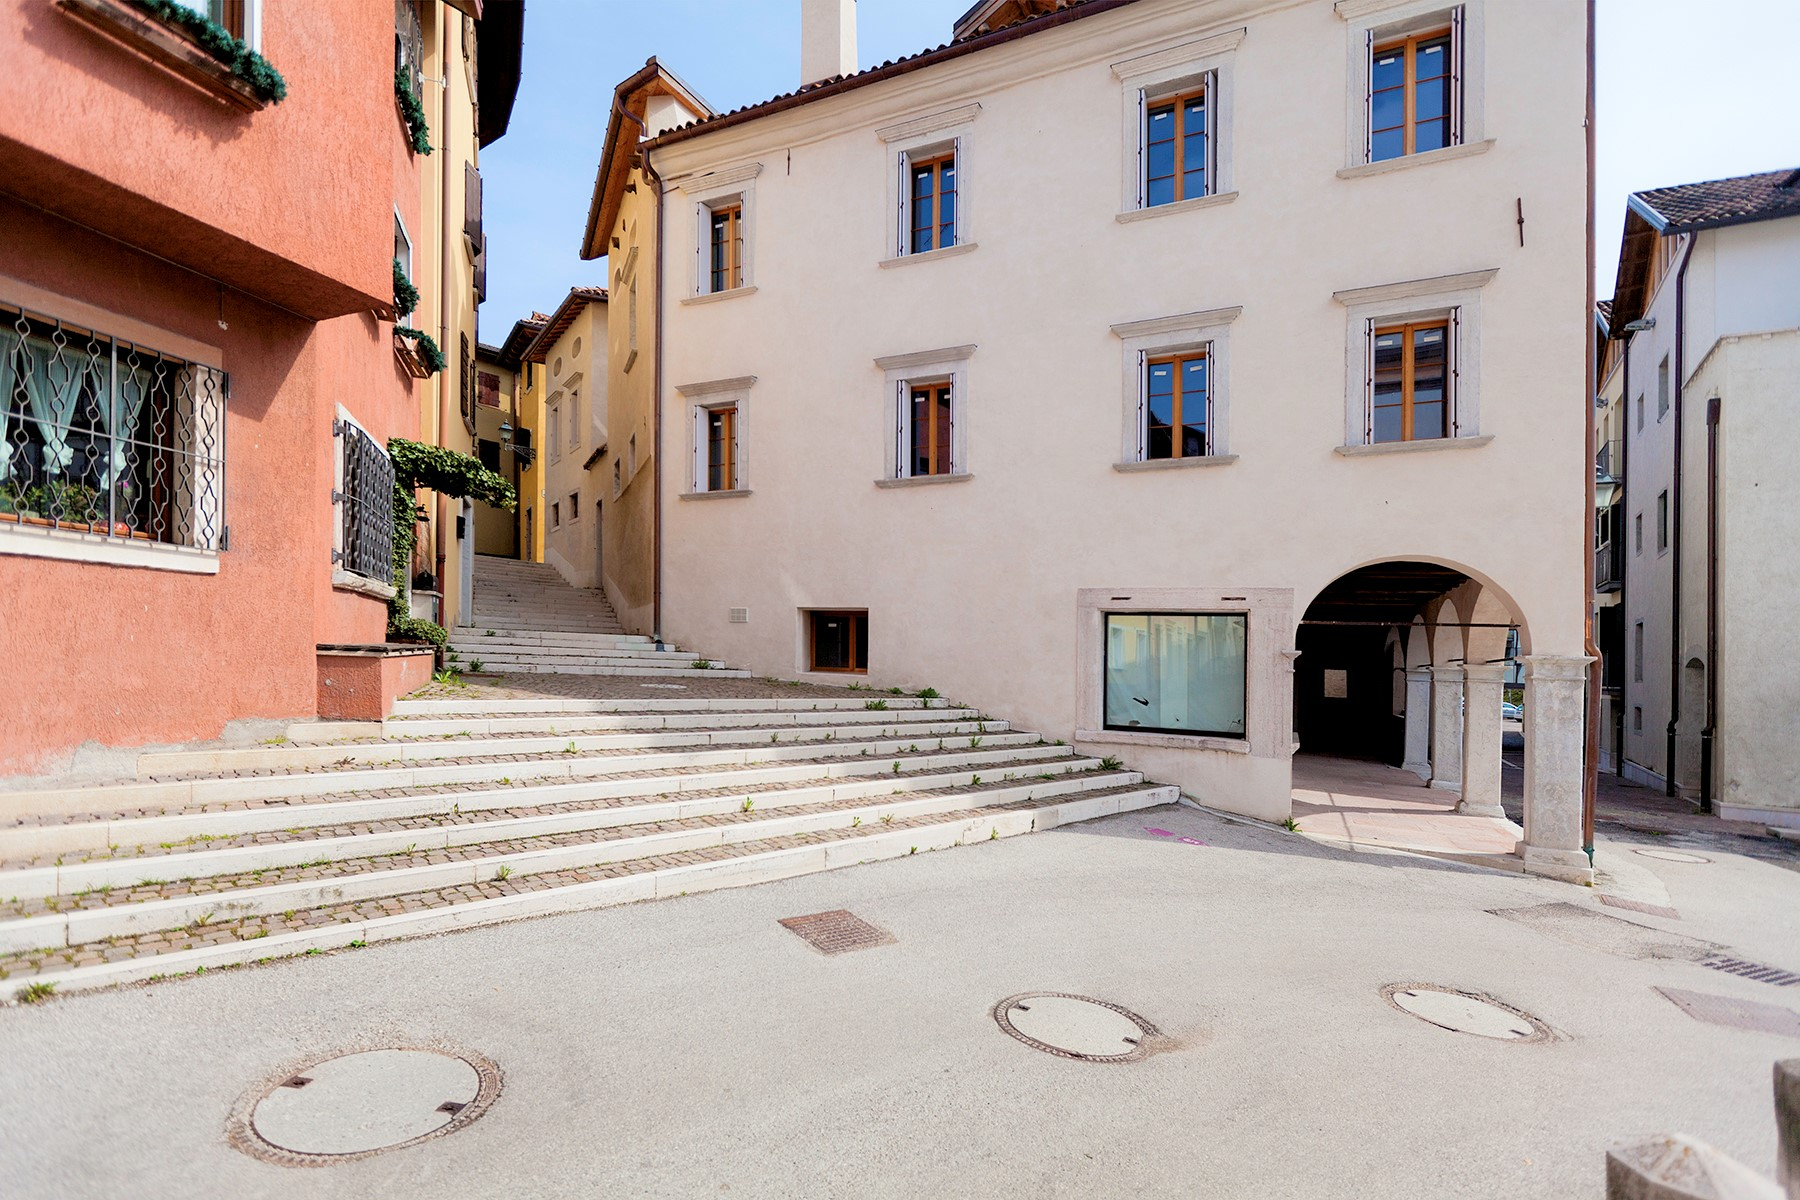 Apartments for Sale at Charming first floor apartment in the heart of Belluno Belluno, Belluno Italy